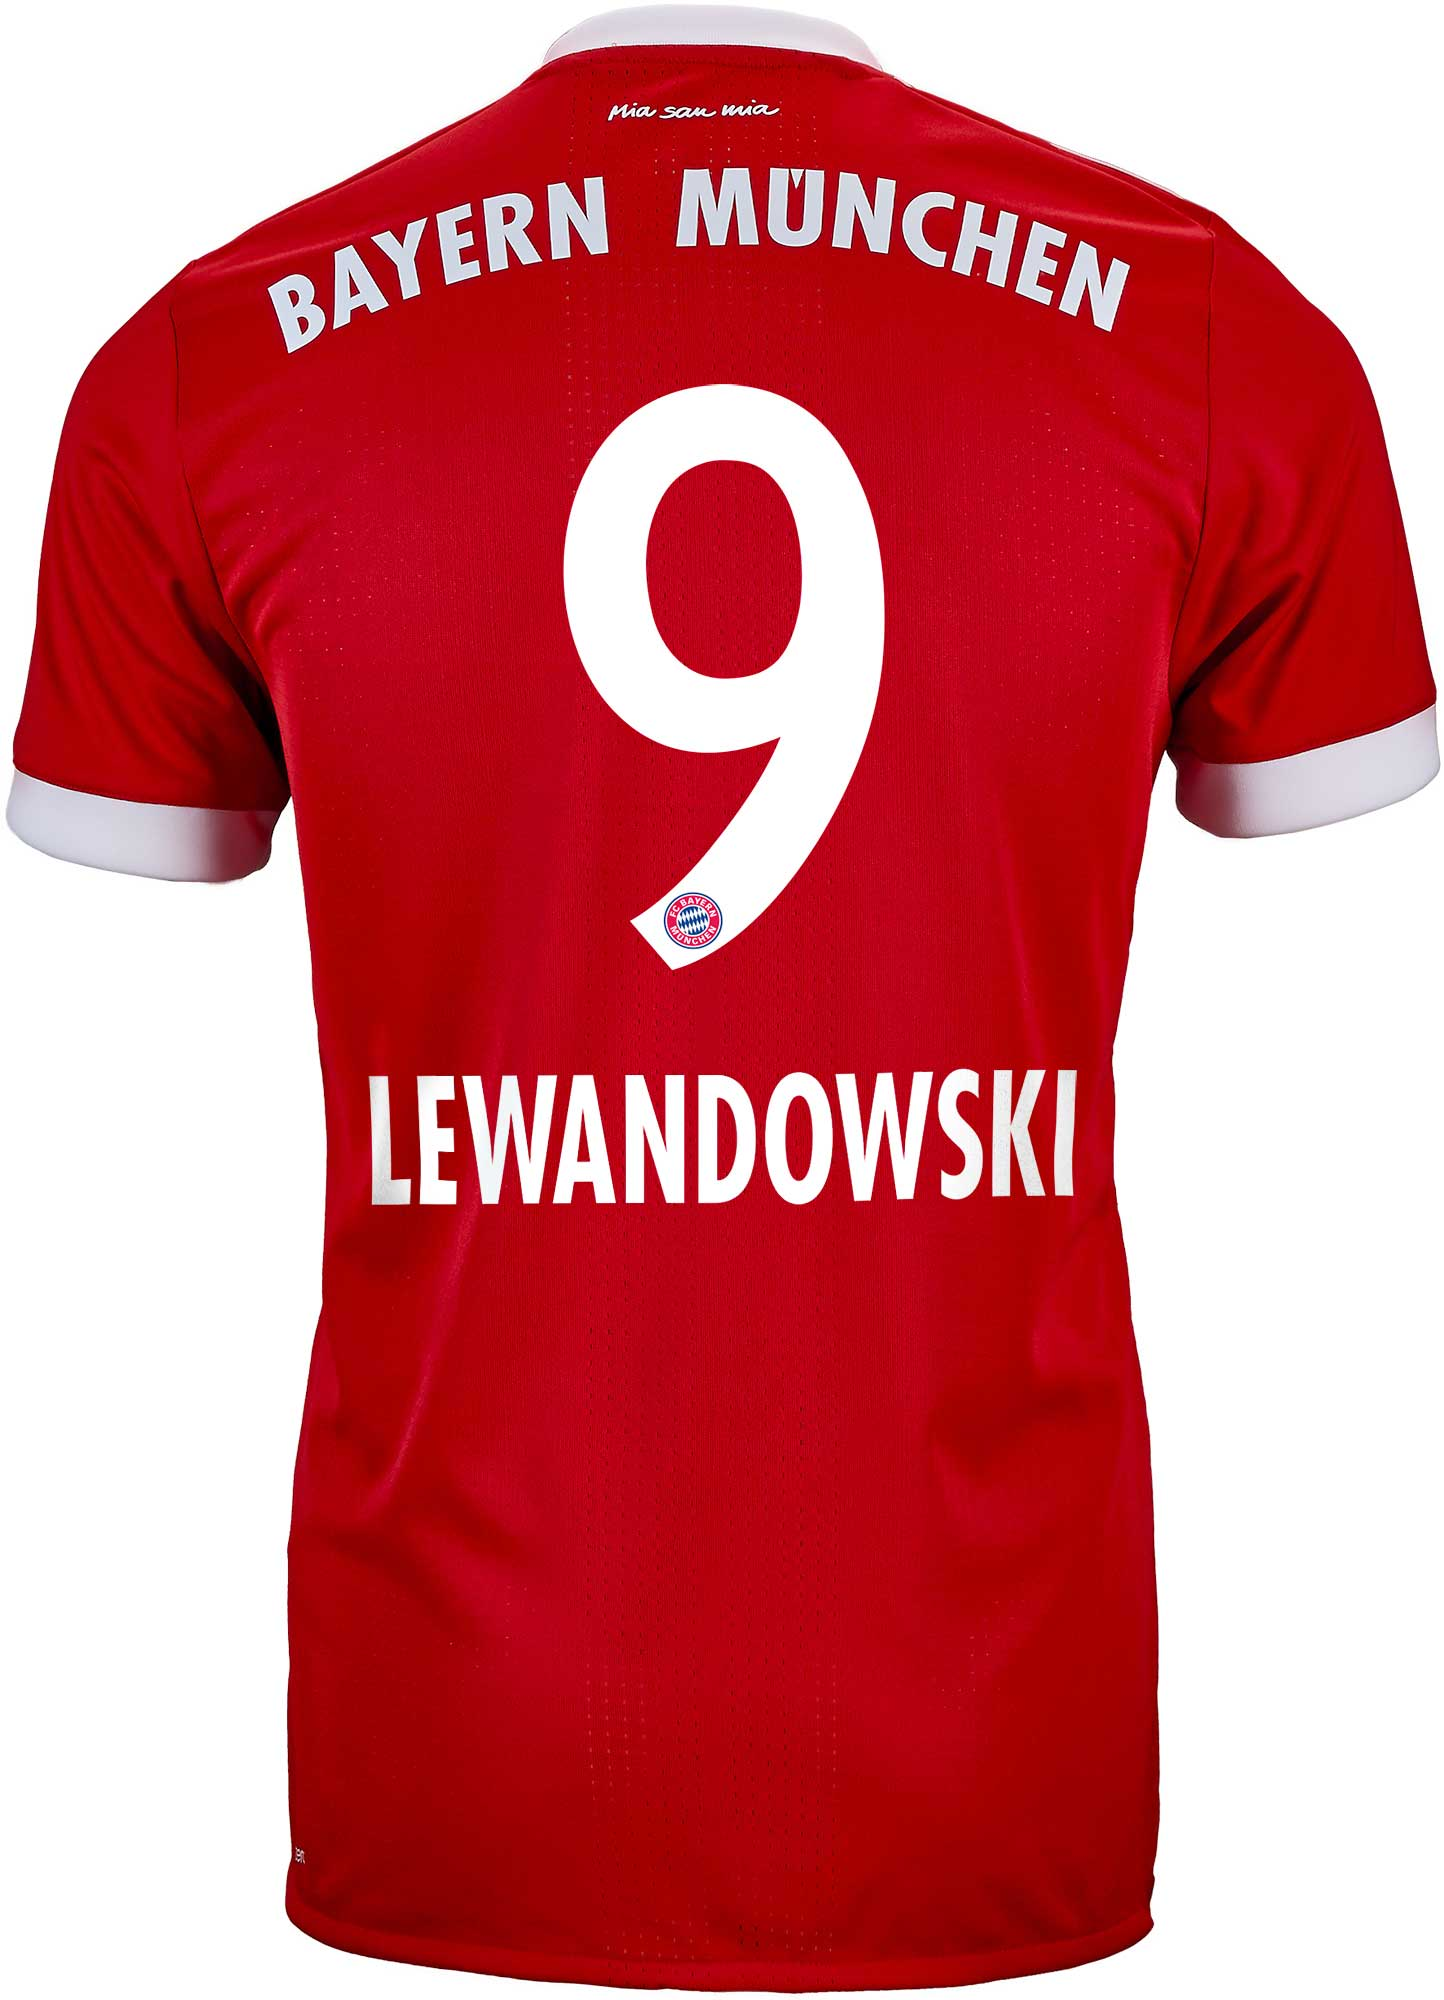 best loved 817d0 3ff2b adidas Lewandowski Bayern Munich Home Match Jersey 17/18